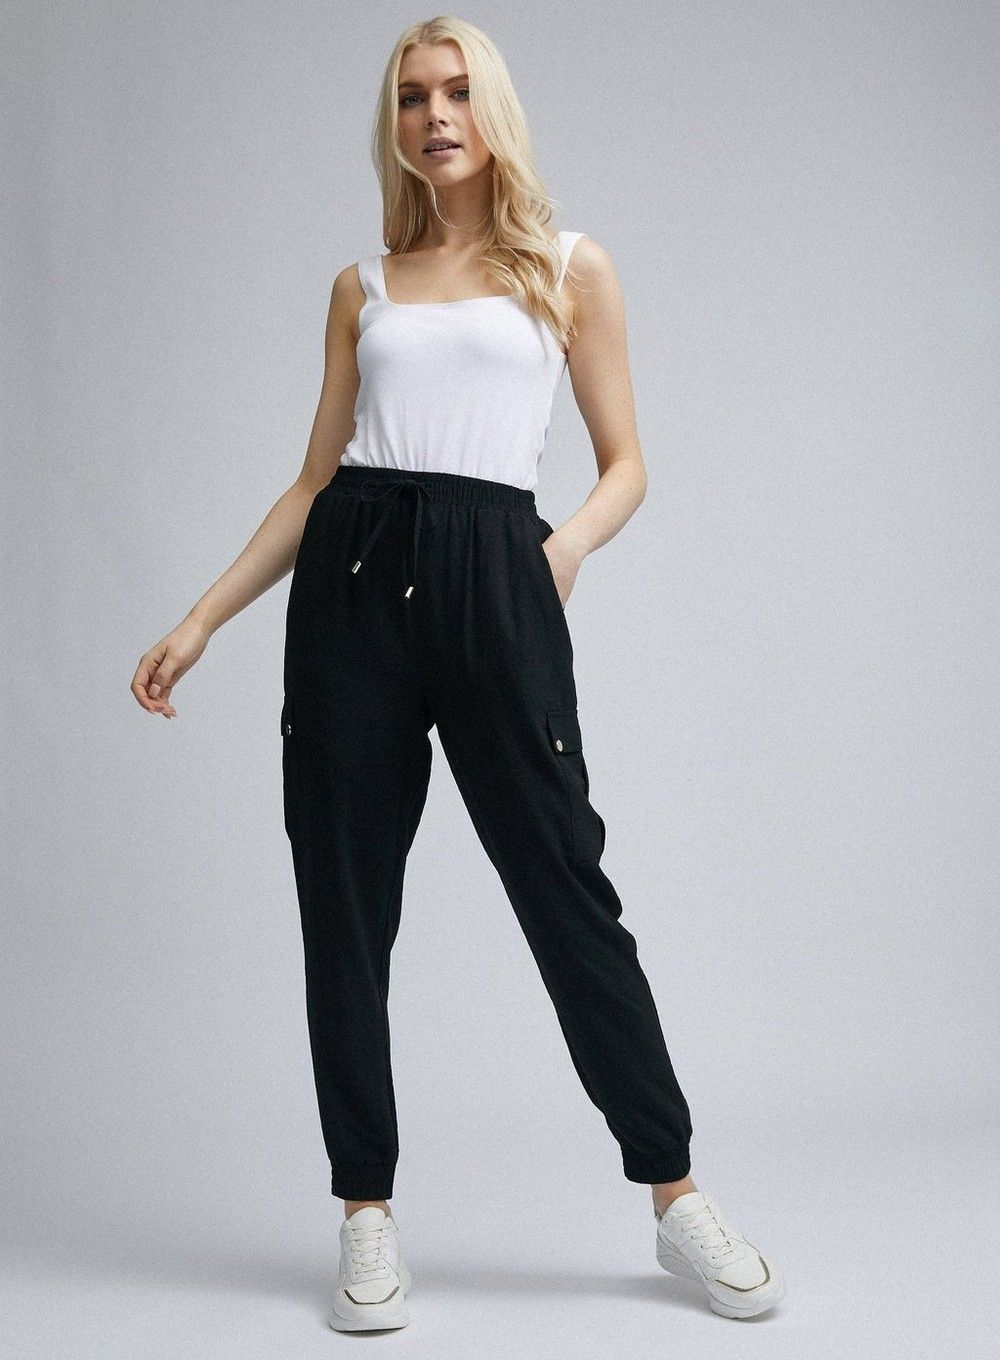 Dorothy Perkins Womens Black Cargo Joggers Trousers Casual